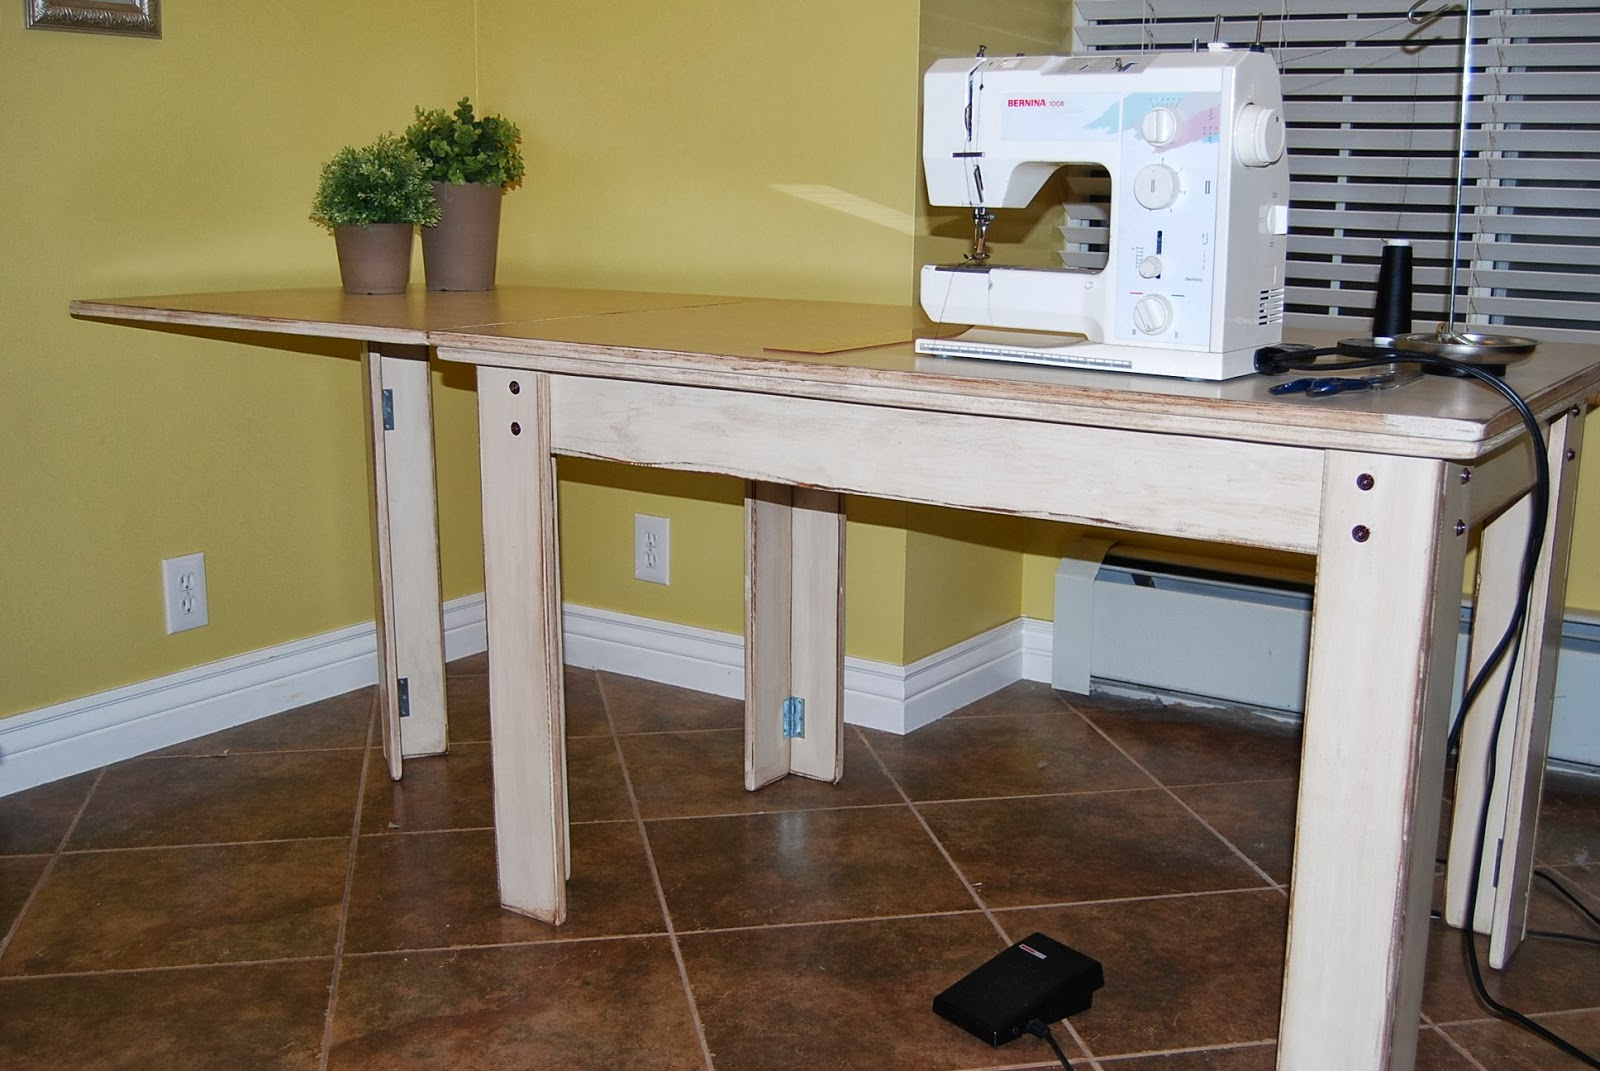 How to make a drop in sewing table image collections table drop in sewing machine table image collections table decoration ideas define your sign make a drop leaf plywood sewing table 1247 best sewing images on watchthetrailerfo